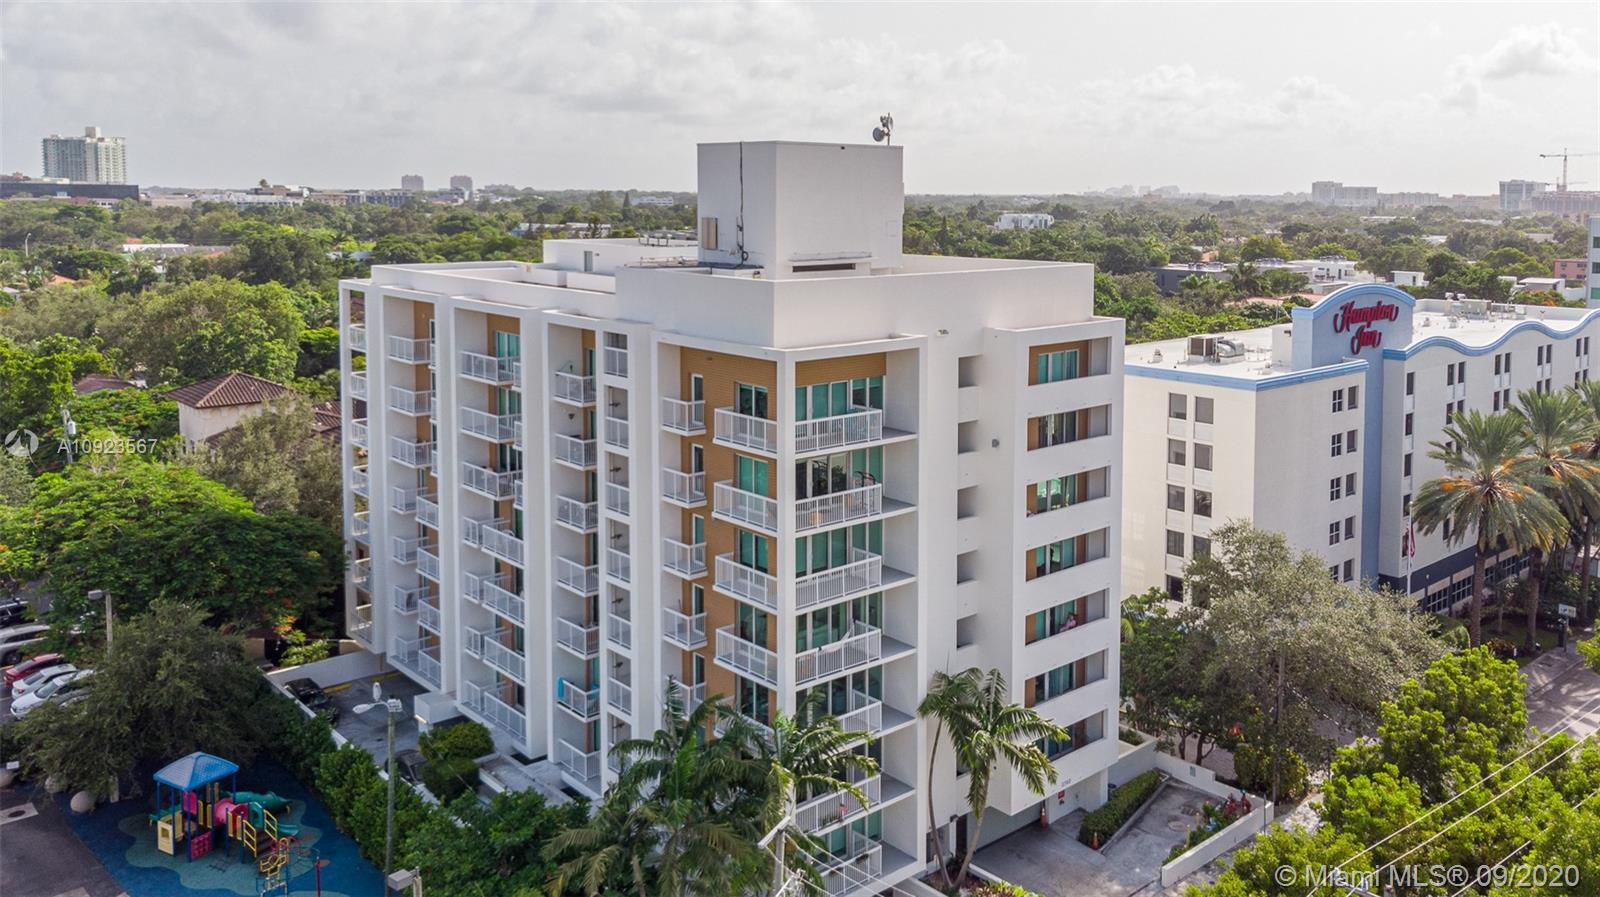 Condo for sale: This one-bedroom renovated condo located in the vibrant city of Coconut Grove, features an open and renovated kitchen, ceramic wood floor, and great lighting. Washer and Dryer inside the unit. One assigned parking space. Enjoy the Miami Lifestyle to the fullest. Minutes away from Brickell, Coral Gables, The University of Miami, Downtown Miami, and all the culture Miami has to offer. Walking distance from the Coconut Grove train station and much more. Buy with only 5% downpayment. Condo has reserves.